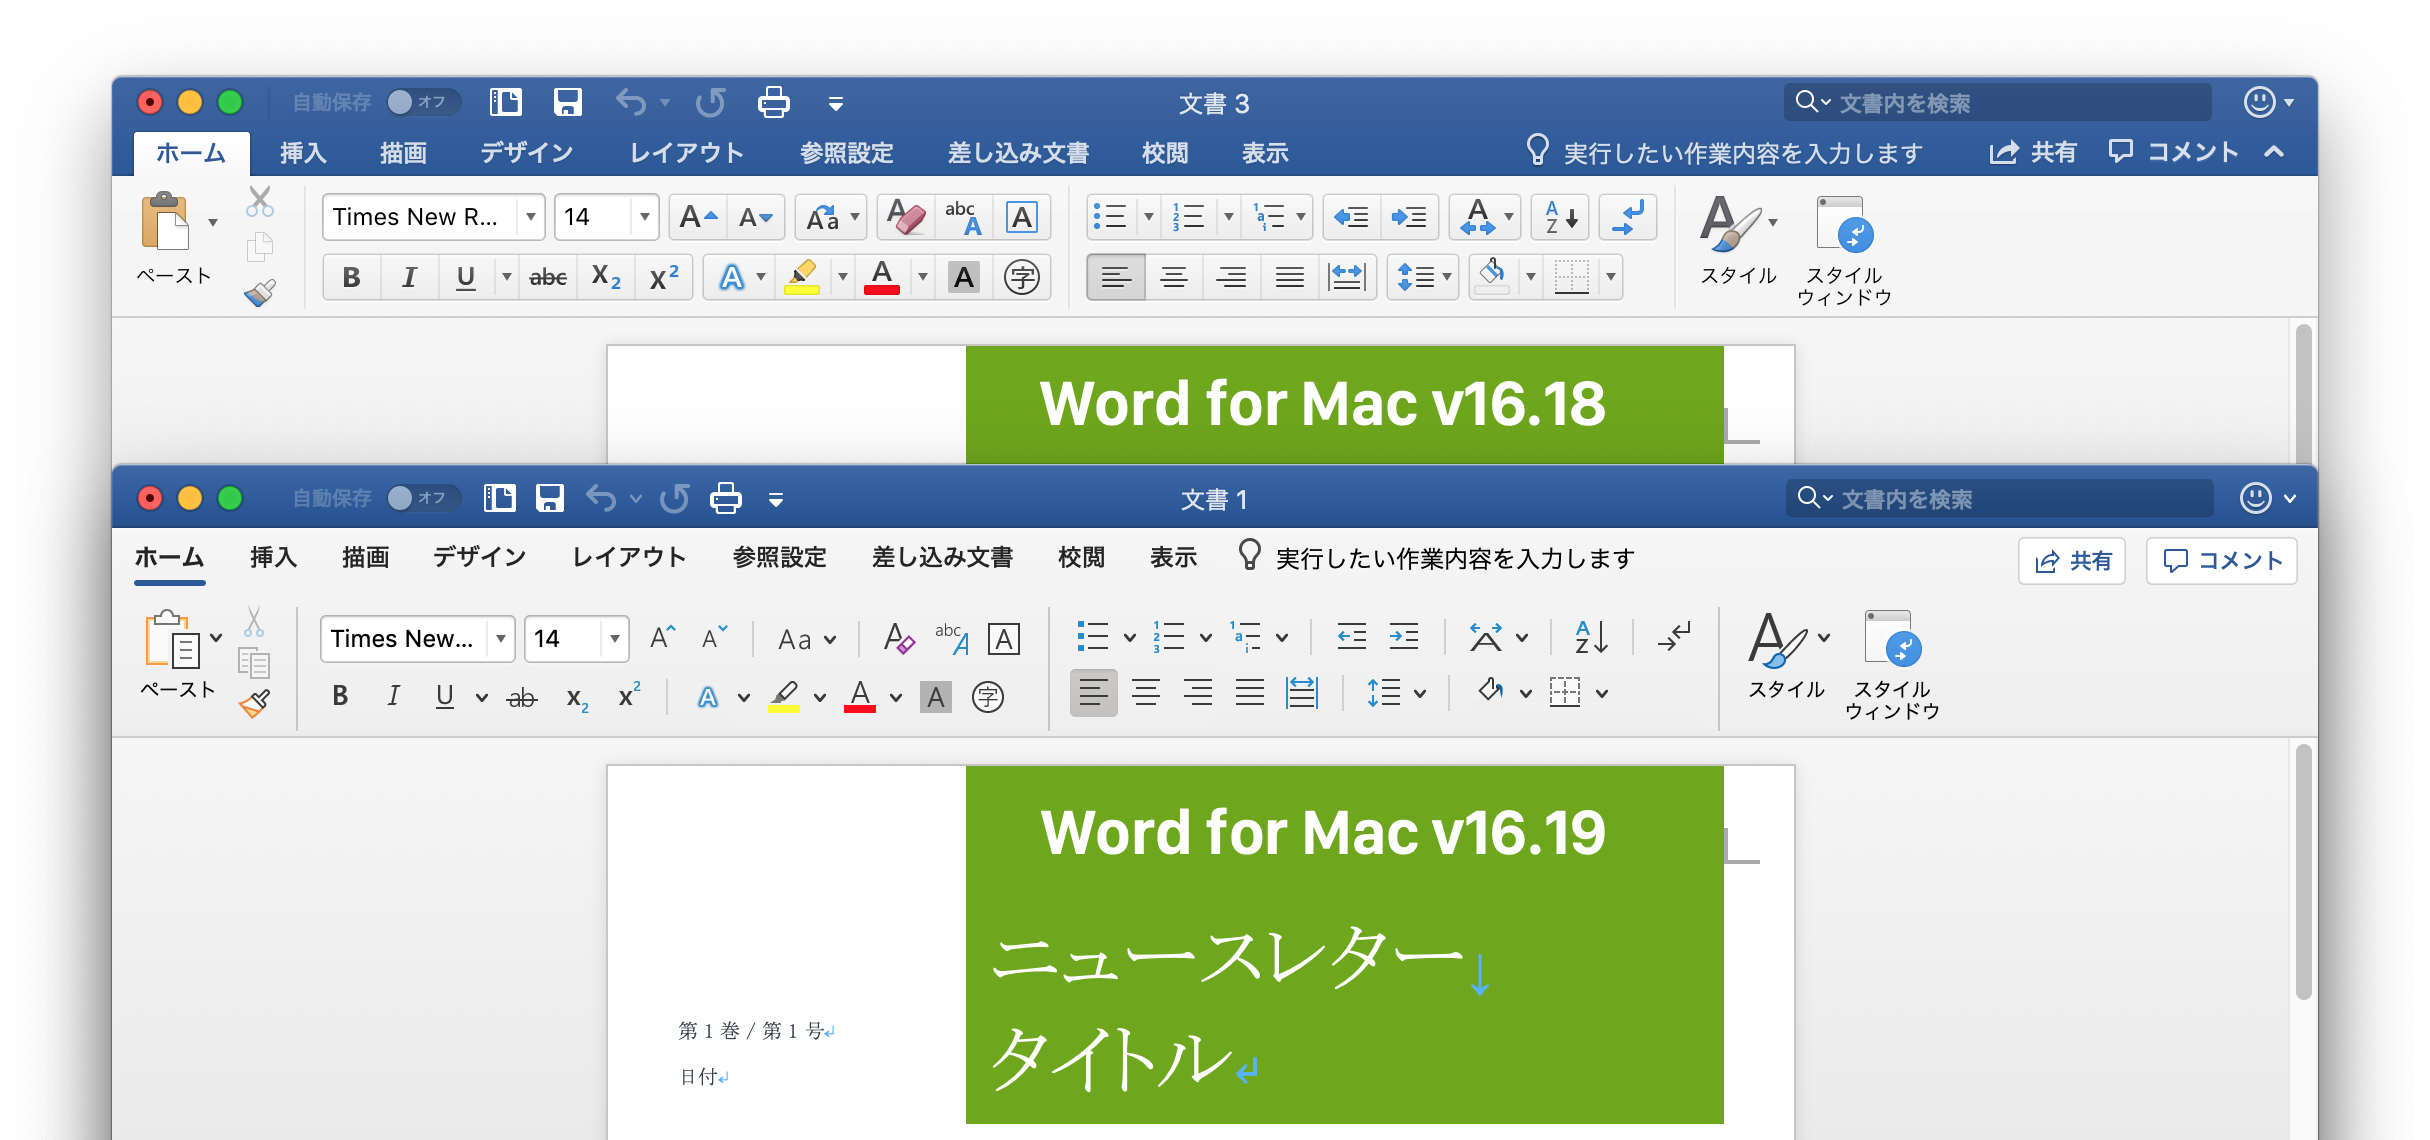 Microsoft Office for Mac v16.19